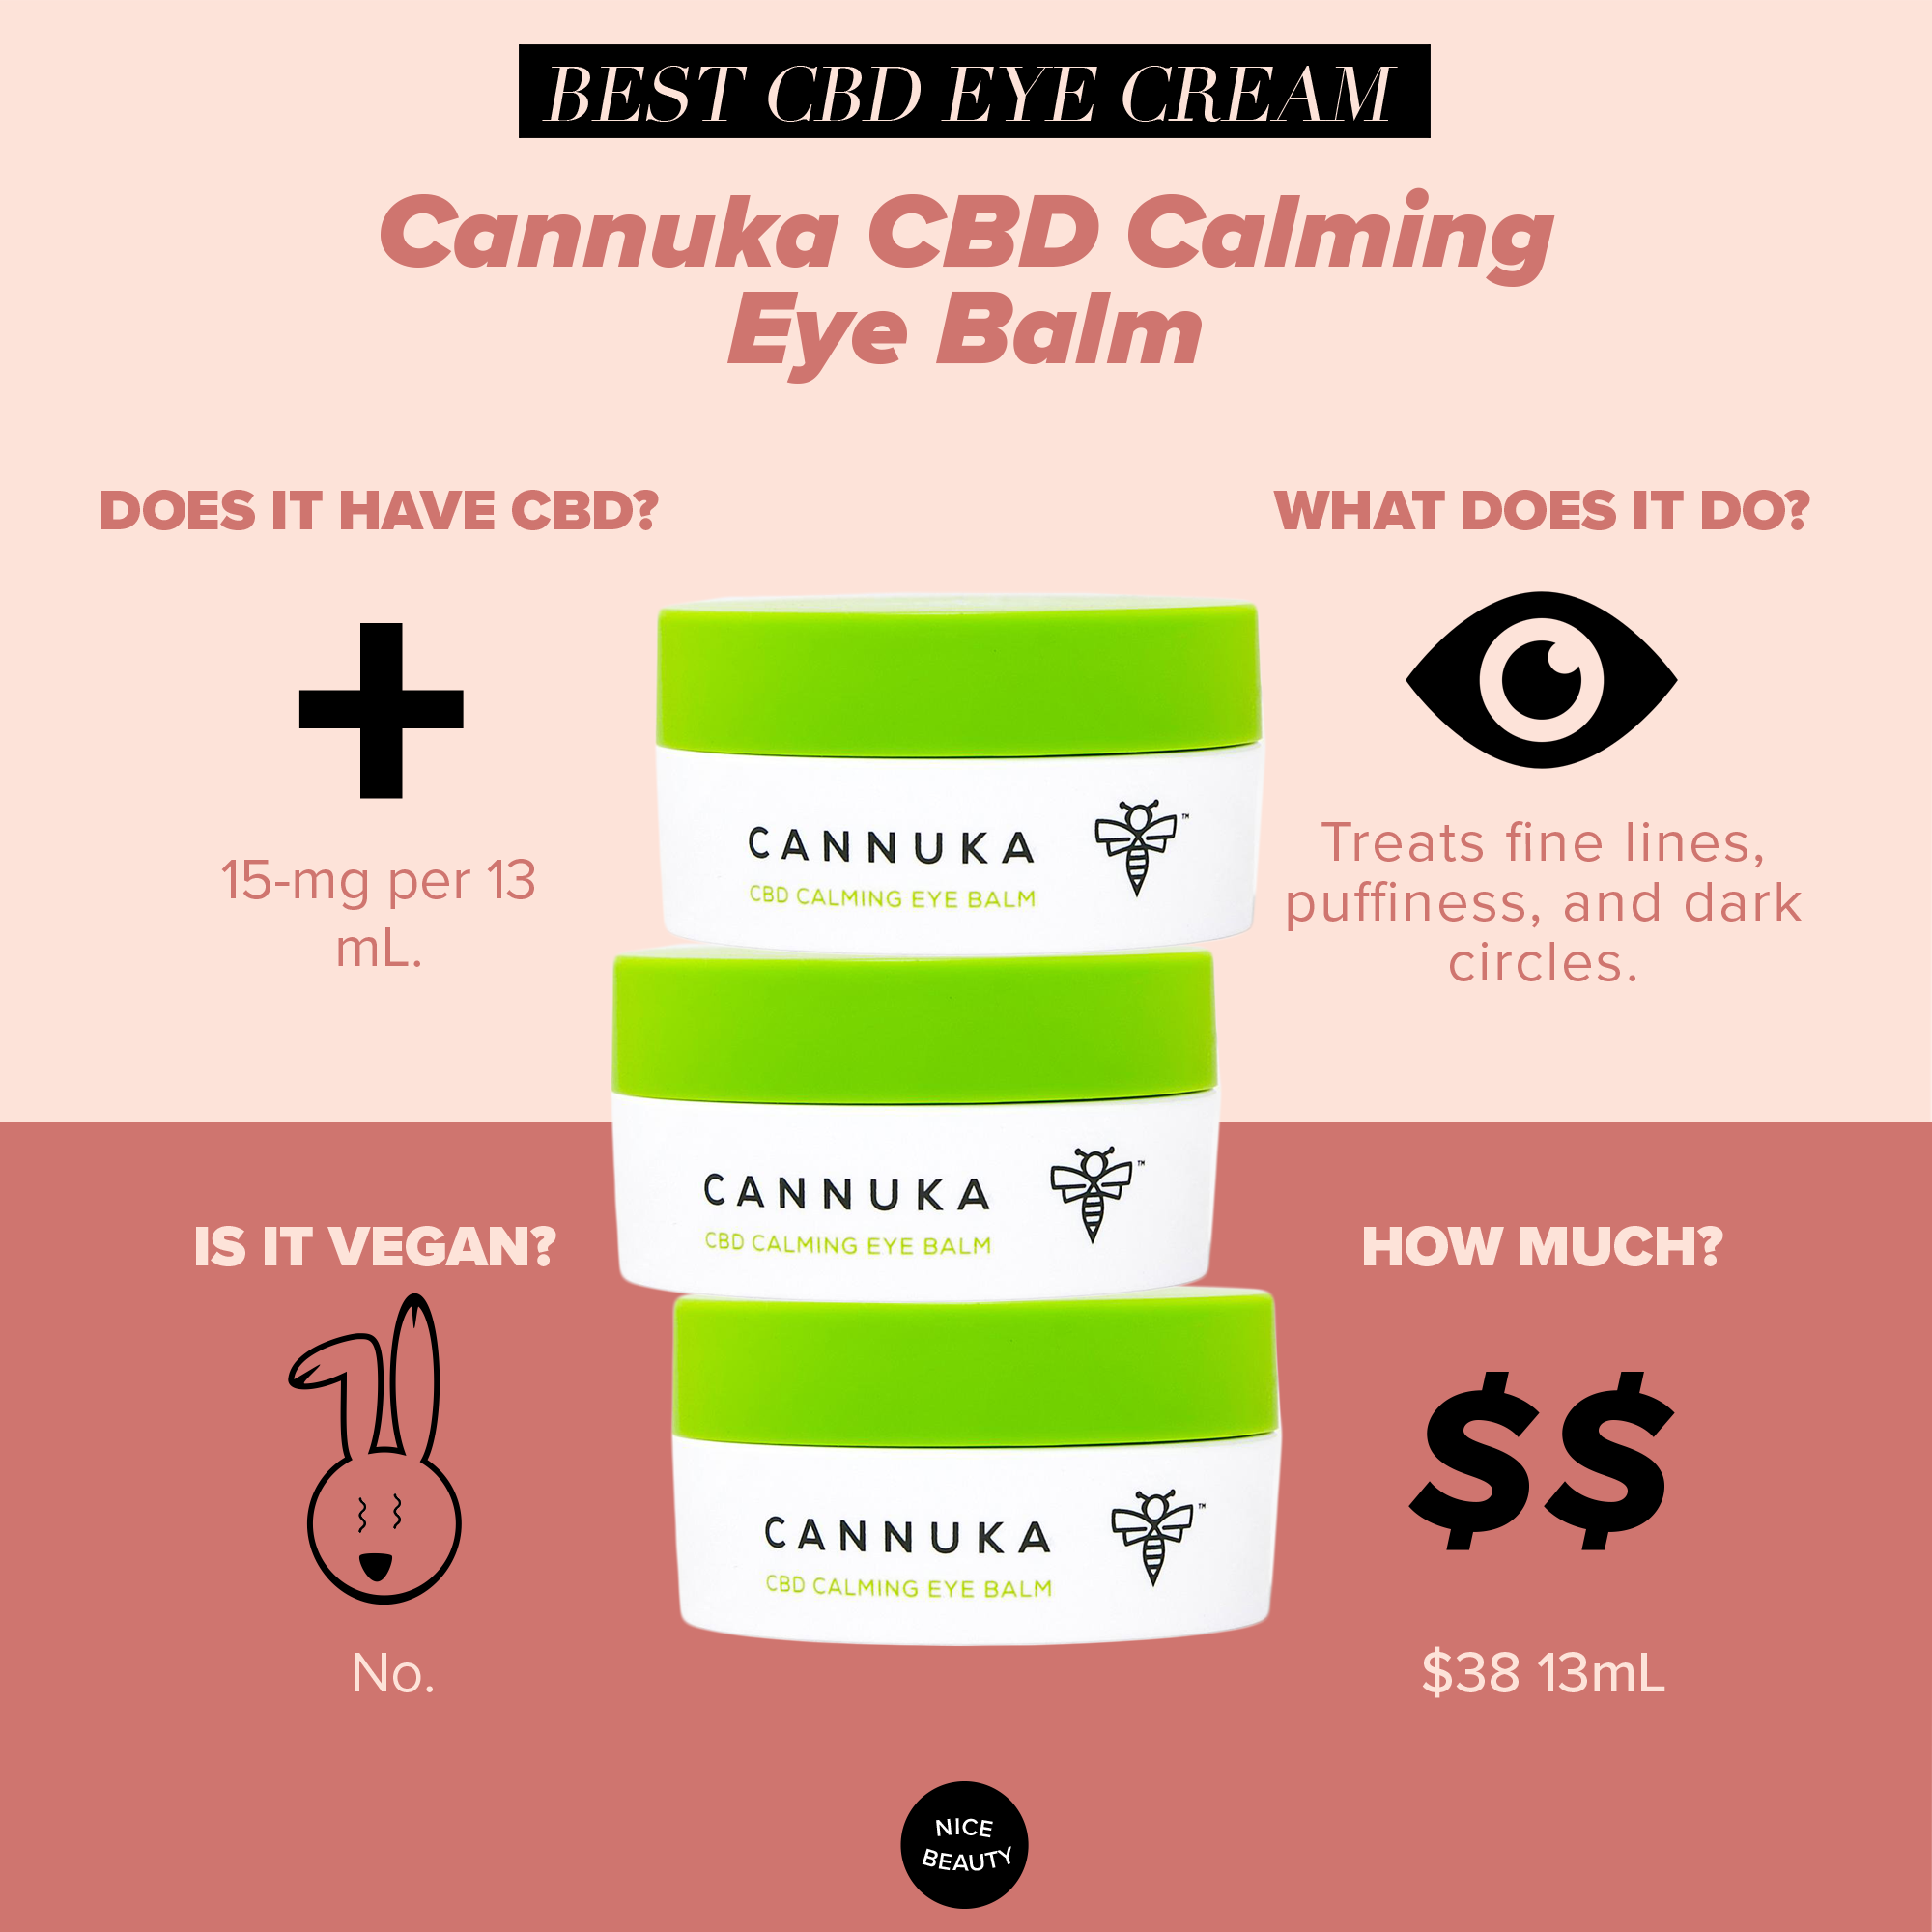 Cannuka CBD Calming Eye Balm - This CBD balm combines the restorative powers of Manuka honey with CBD's anti-inflammatory properties. A mix of healing oils hemp seed, Rose, Grapeseed and charged with Vitamin E, this balm creates a protective barrier and melts into your skin, smoothing fine lines while lightening dark circles.